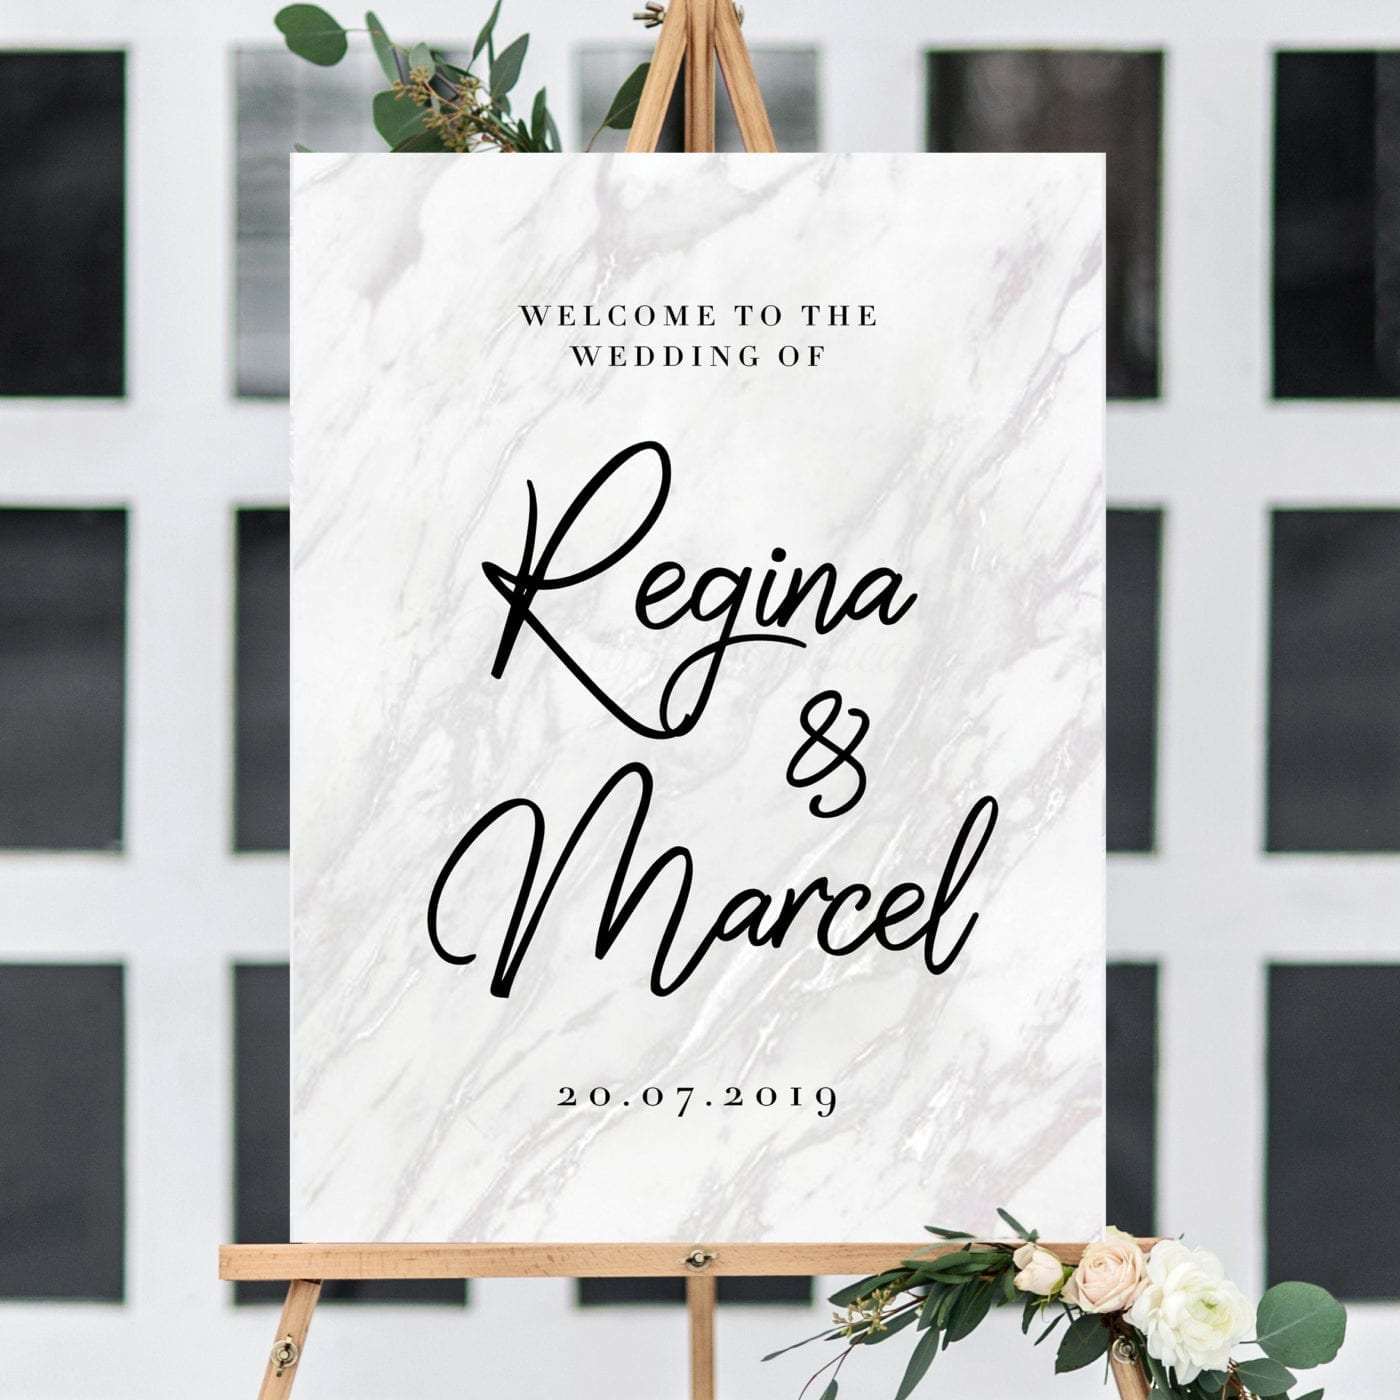 Wedding Welcome Sign.Wedding Welcome Sign Design 15 Marble Foam Board